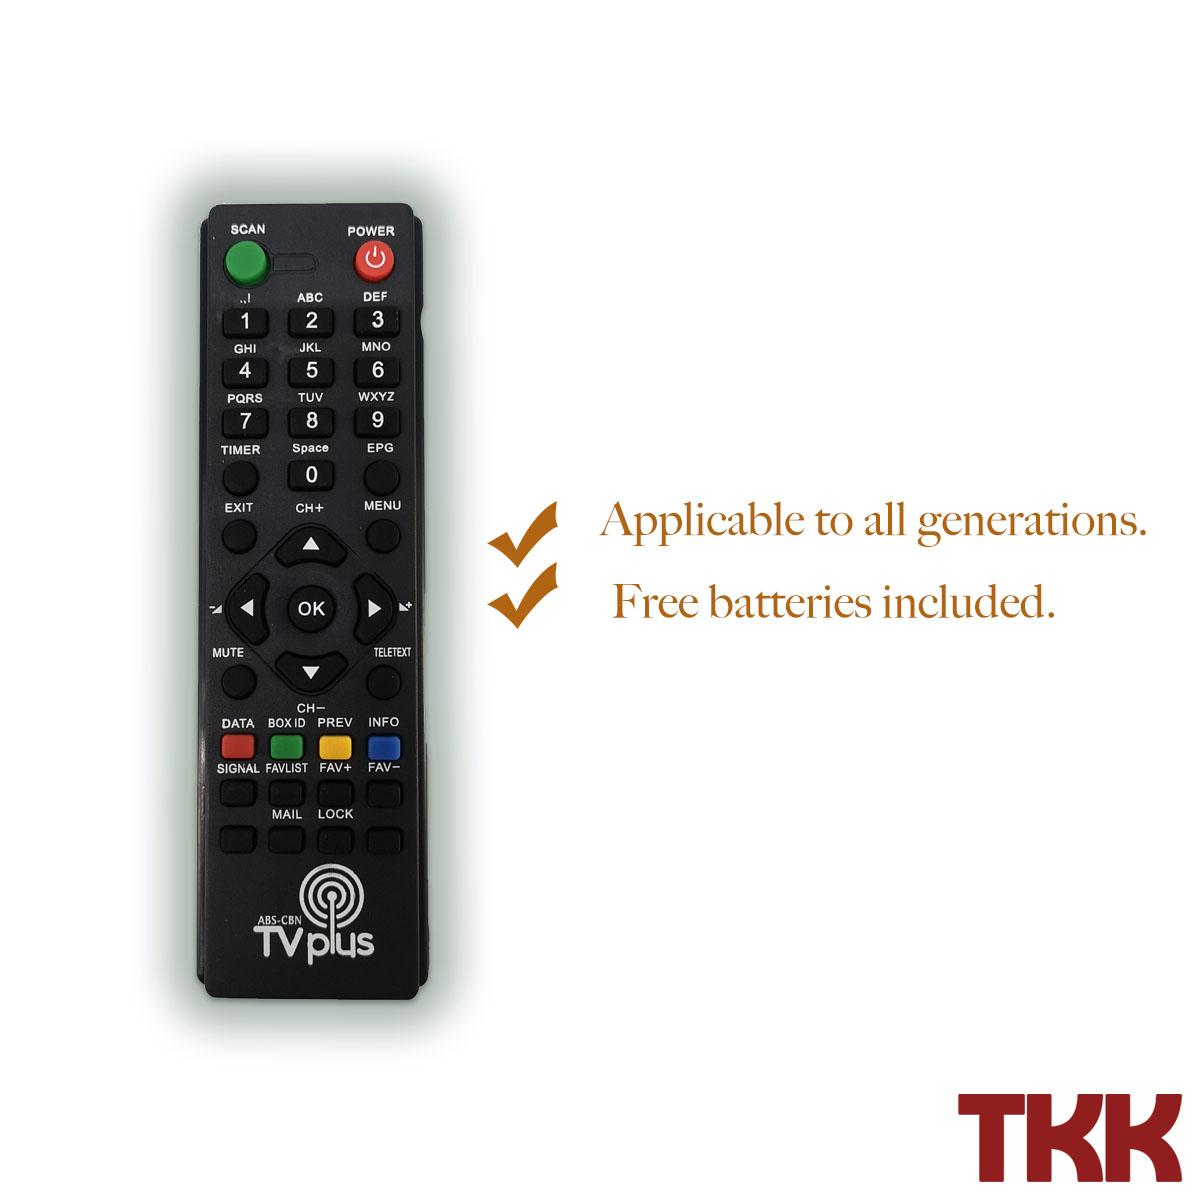 Abs Cbn Tv Plus Remote By Tkk Trading.